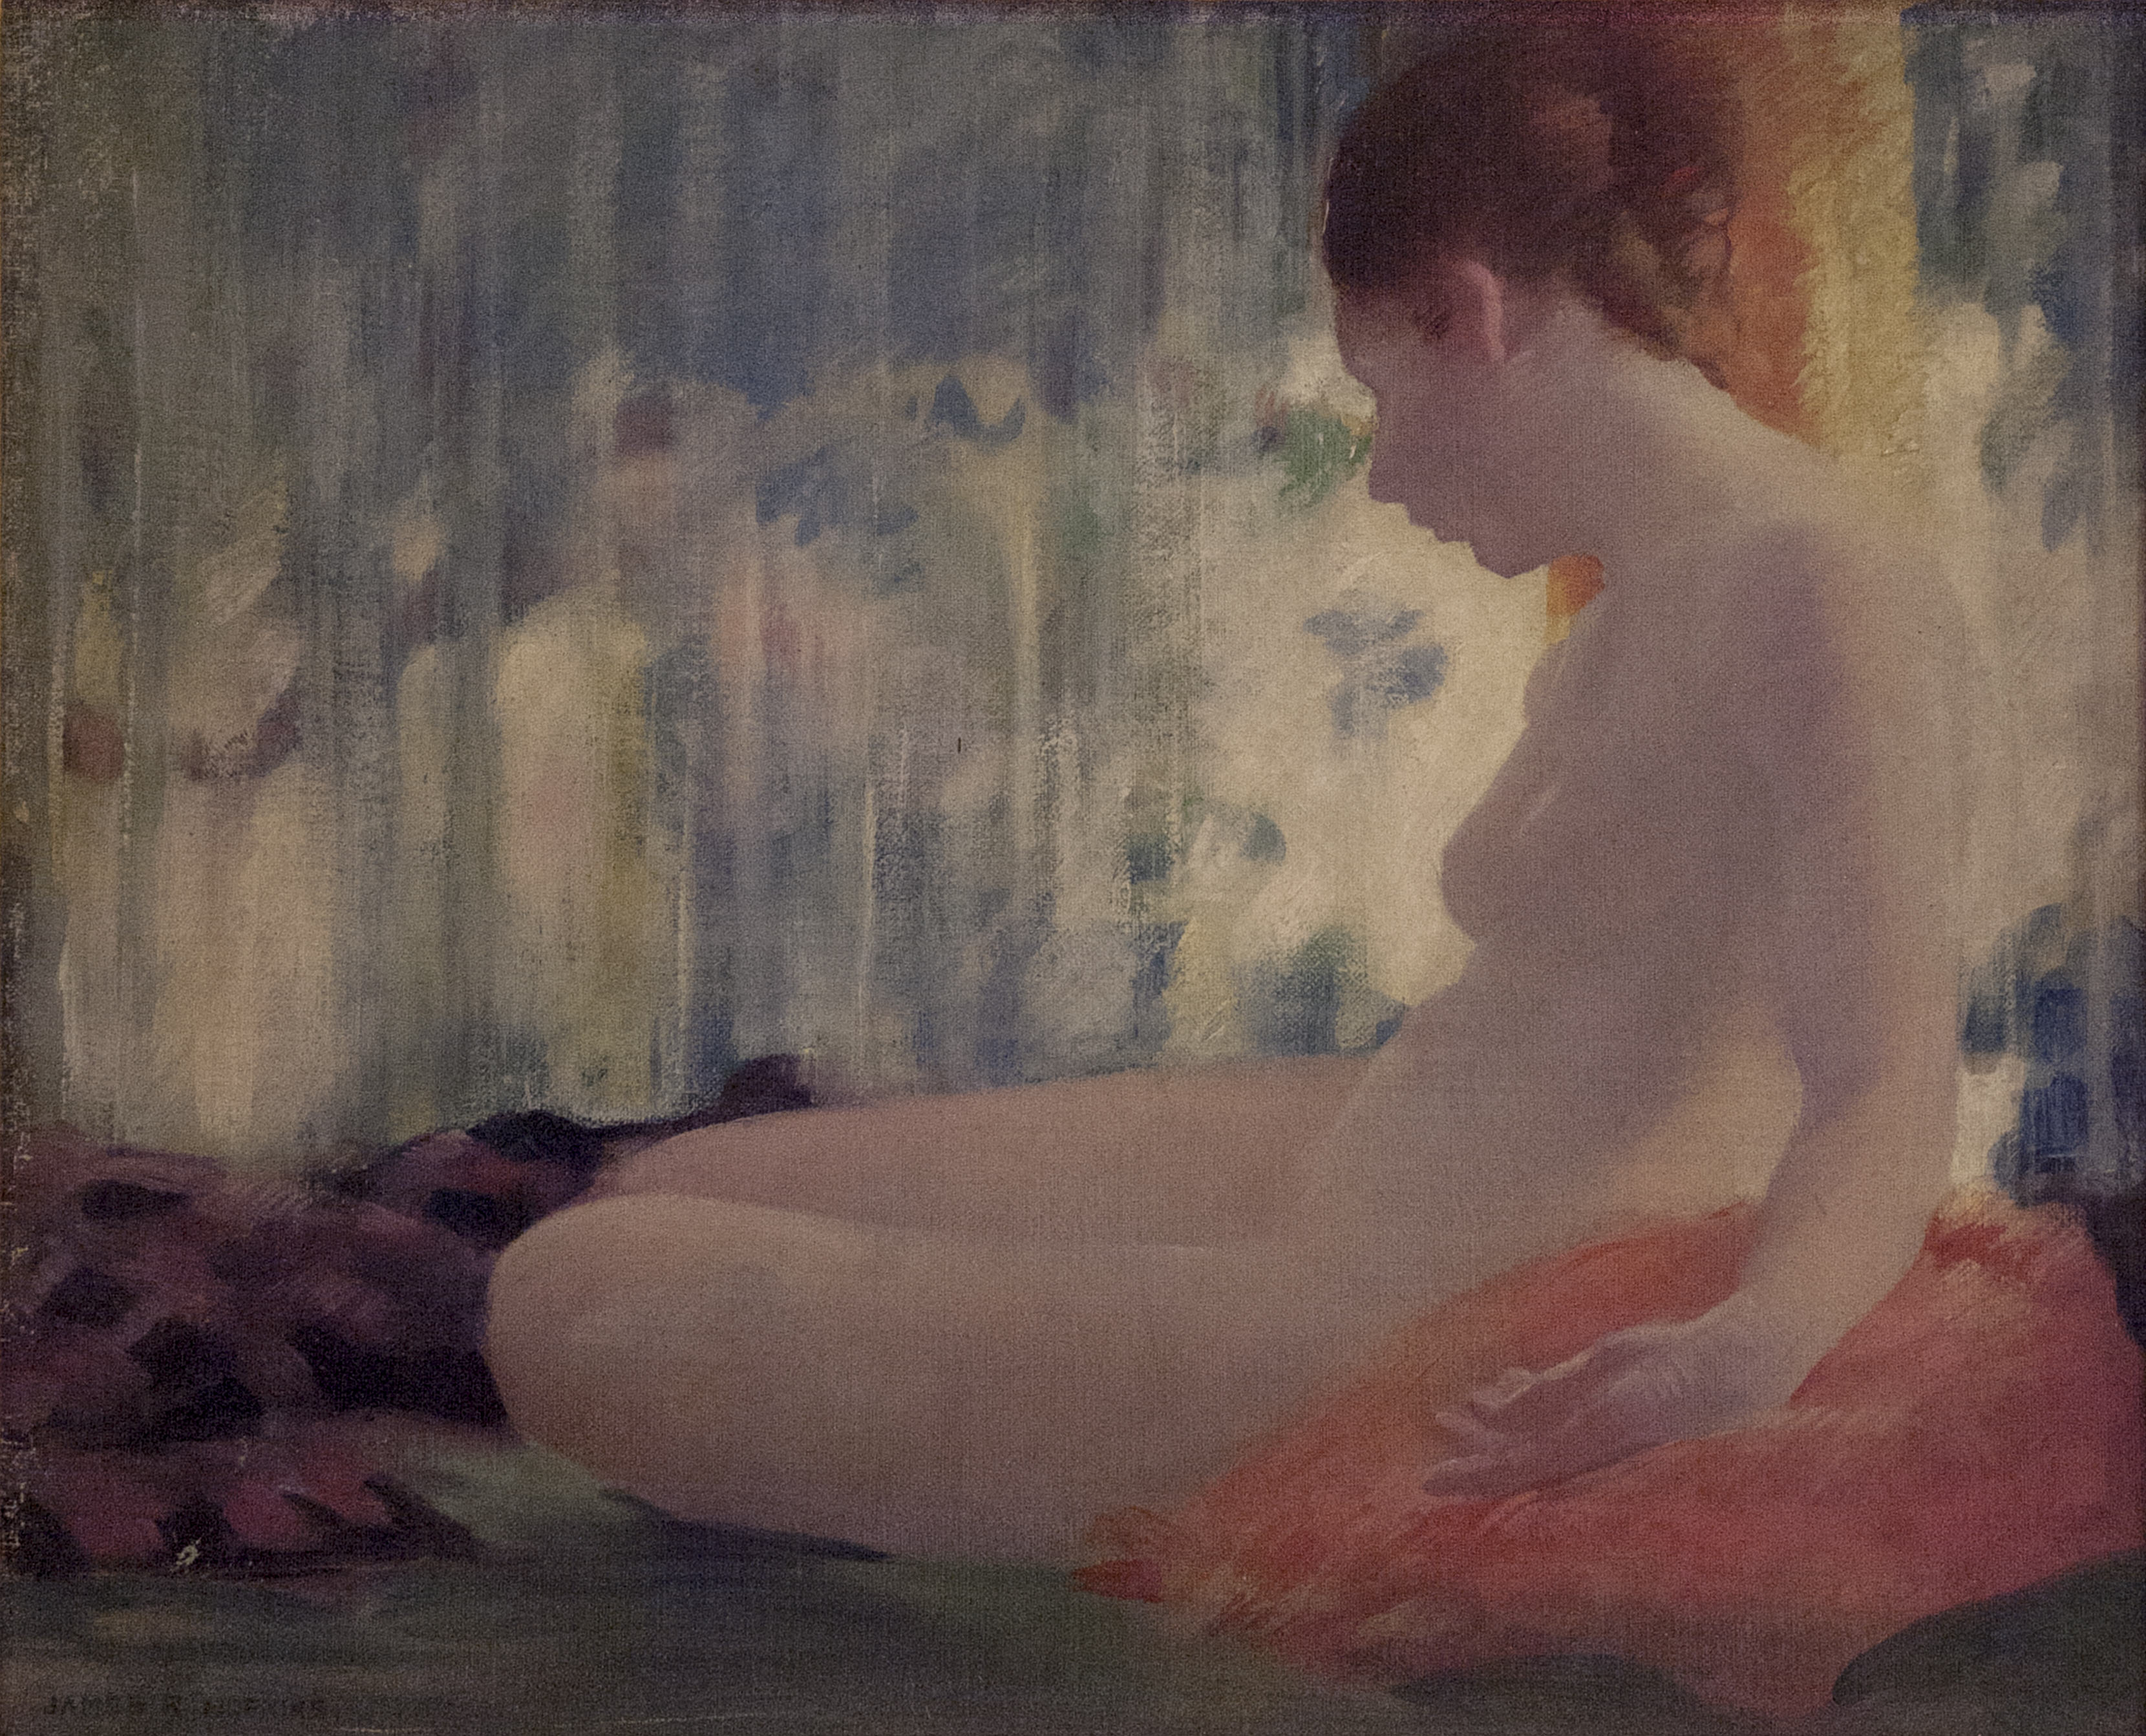 James R. Hopkins | SEATED NUDE, ORANGE PILLOW (CYNTHIA) | oil on canvas | 15 x 18"